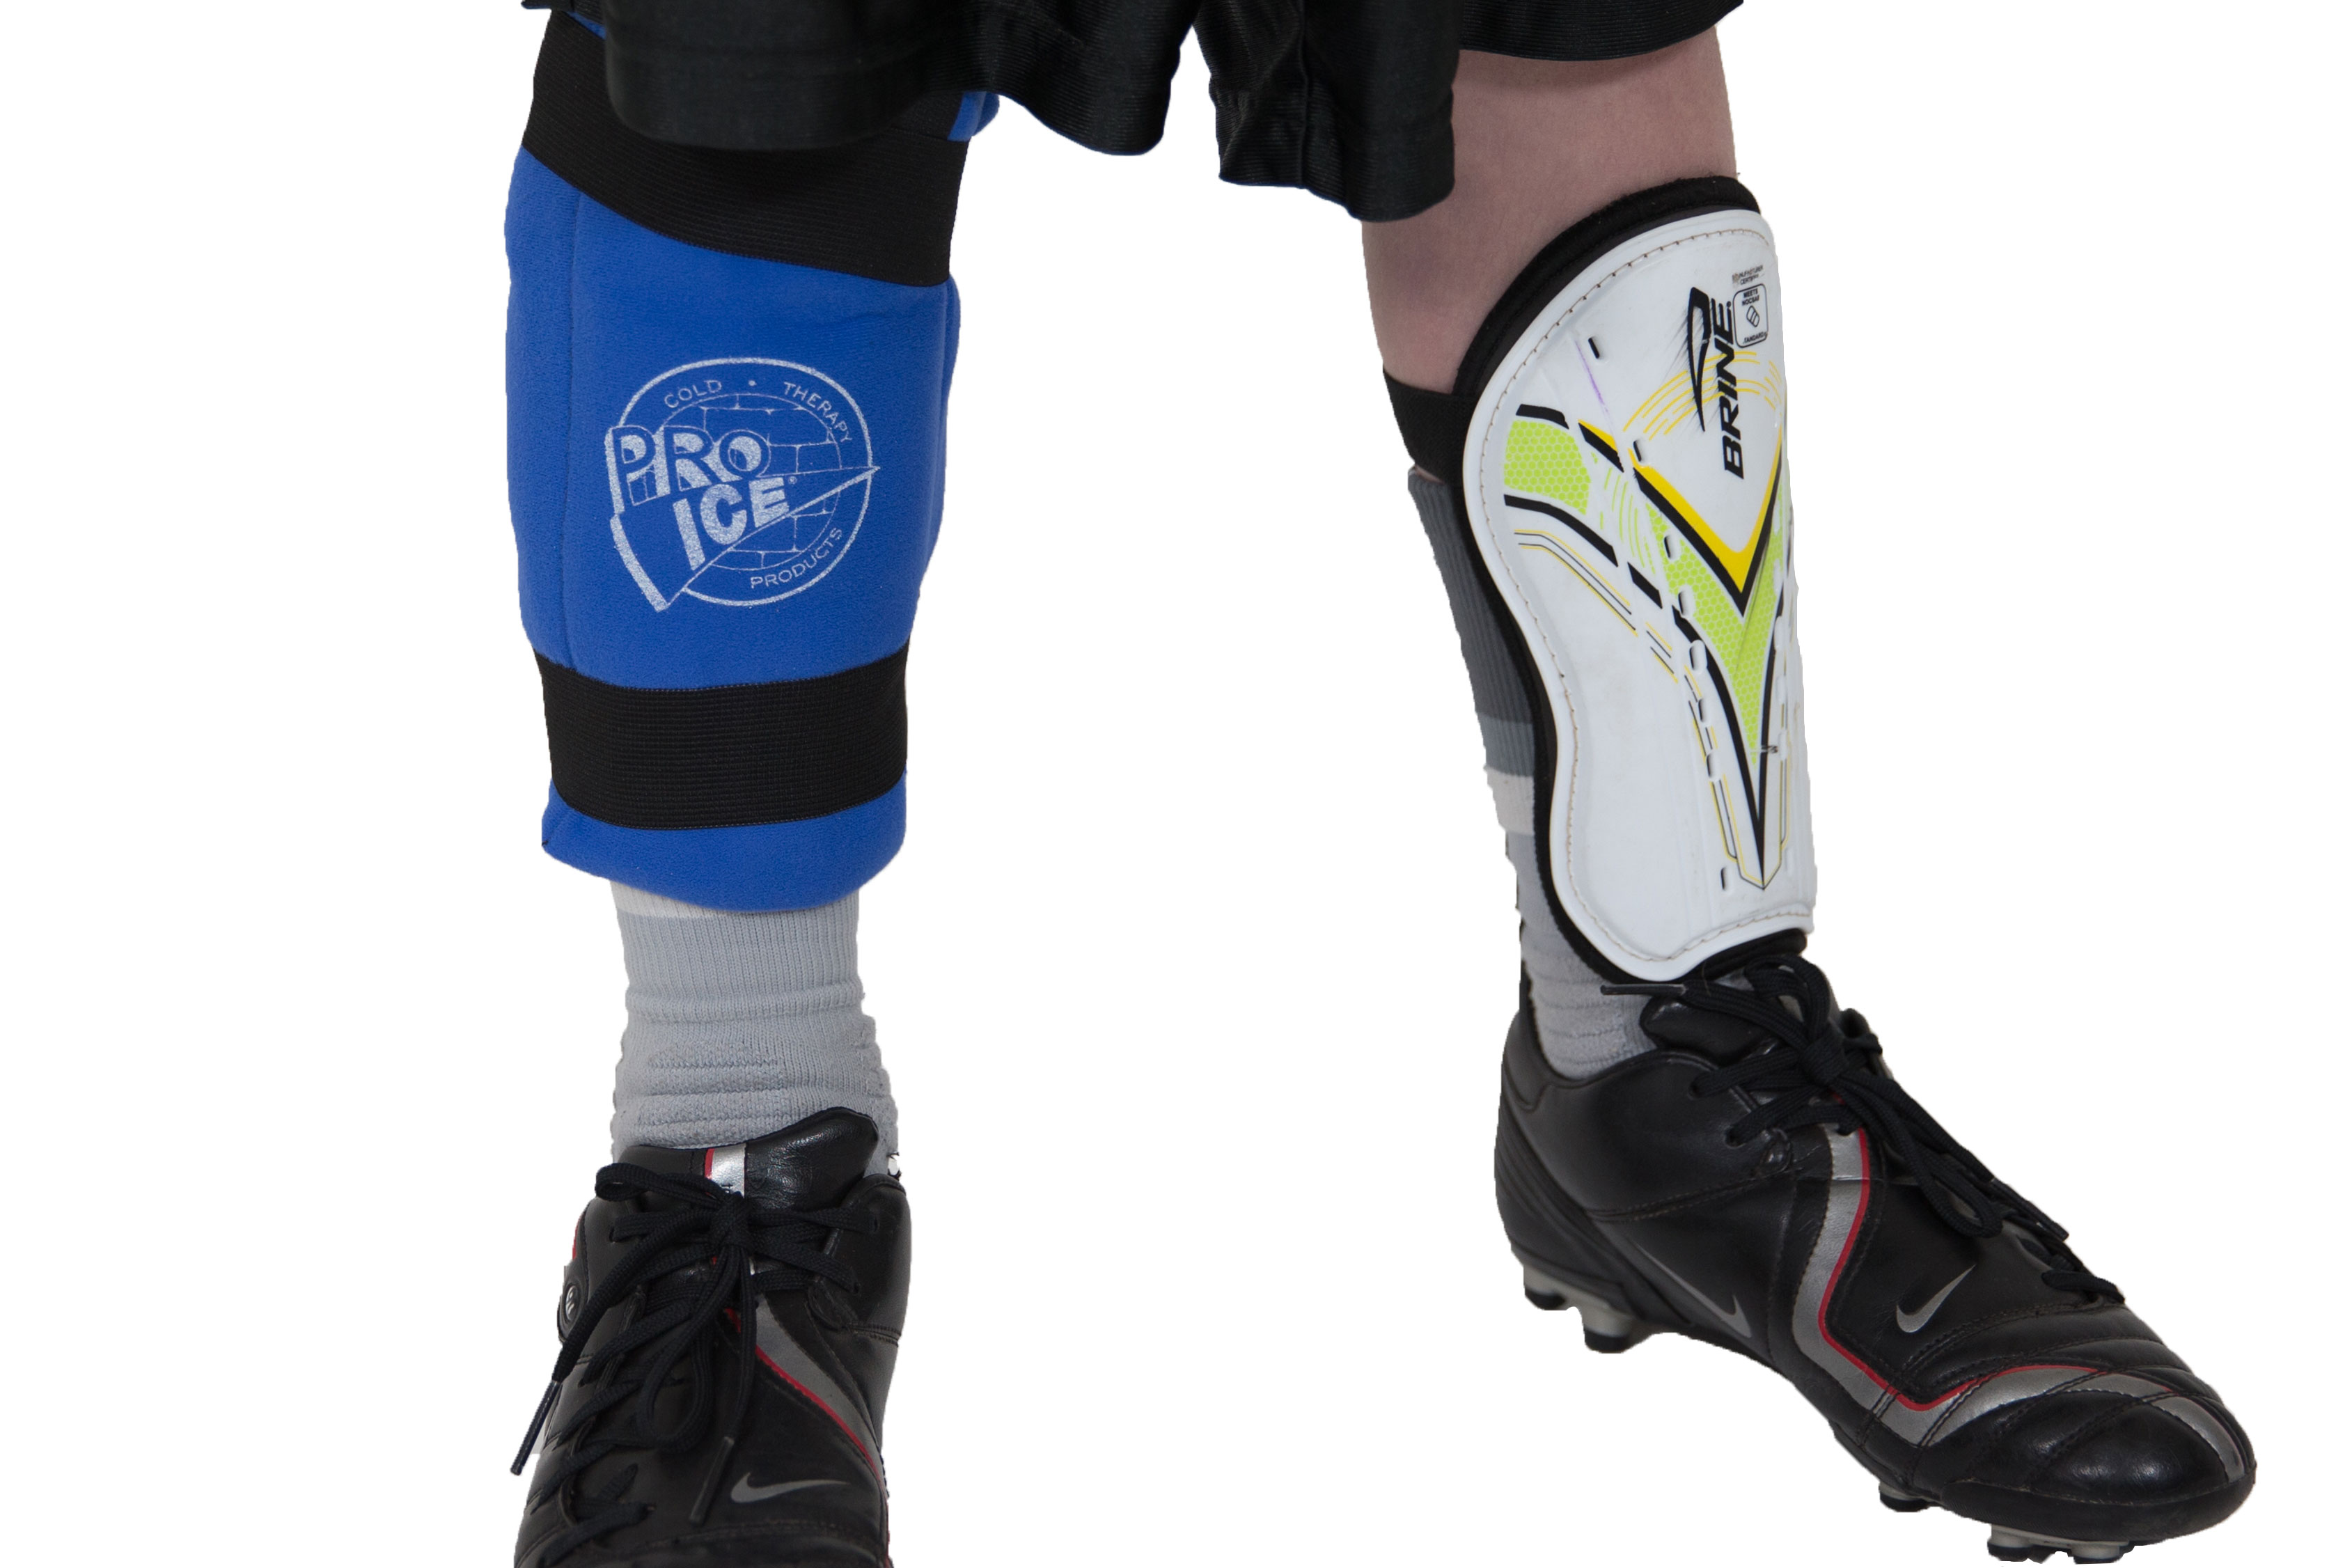 Universal Ice Pack For Shin Splints and Shin Pain, by Pro Ice pi300